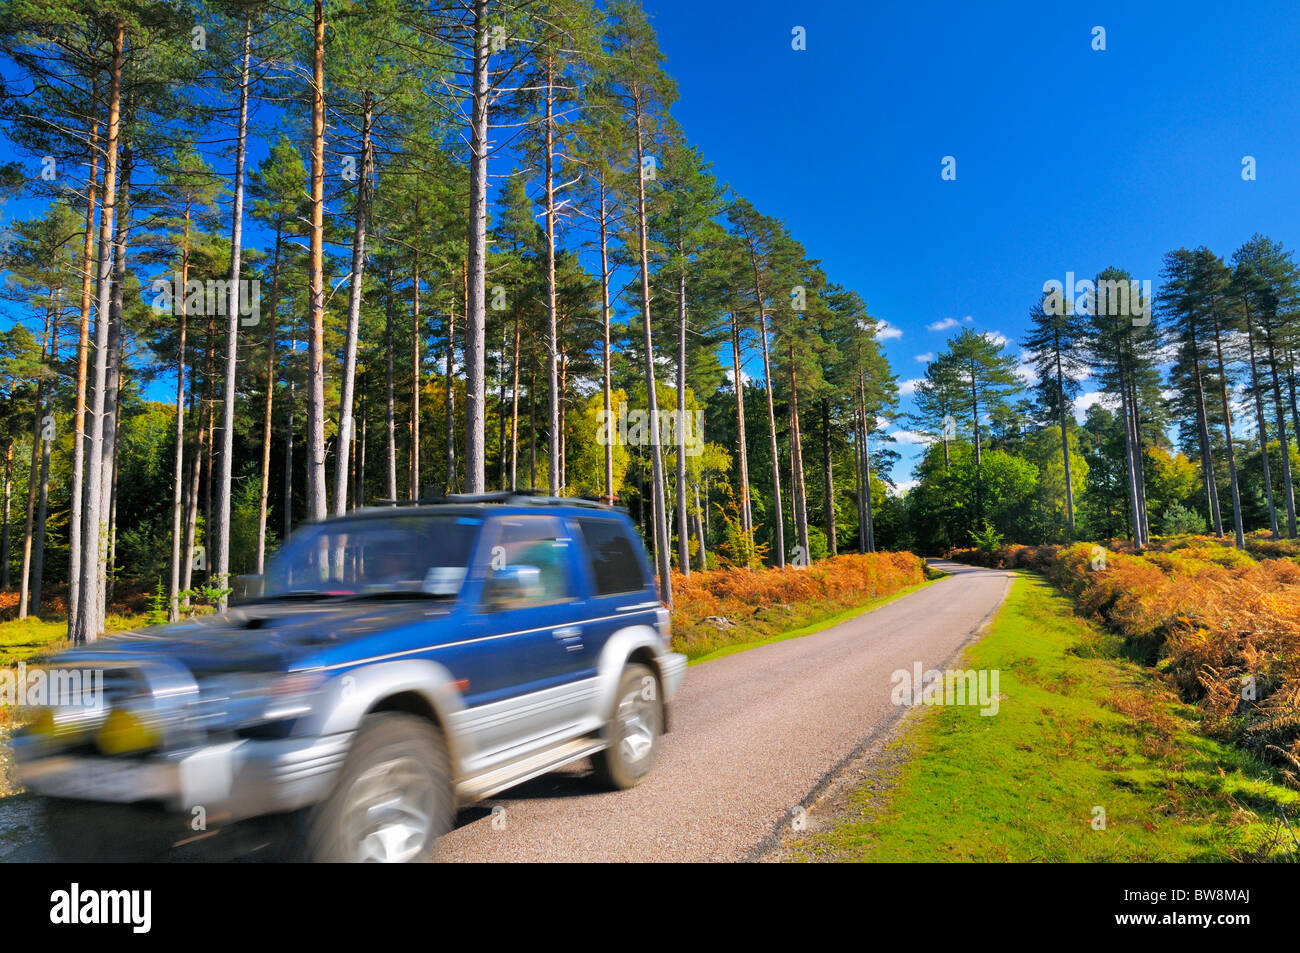 Vehicle passing through a scenic country road in the heart of the New Forest, Hampshire, UK Stock Photo